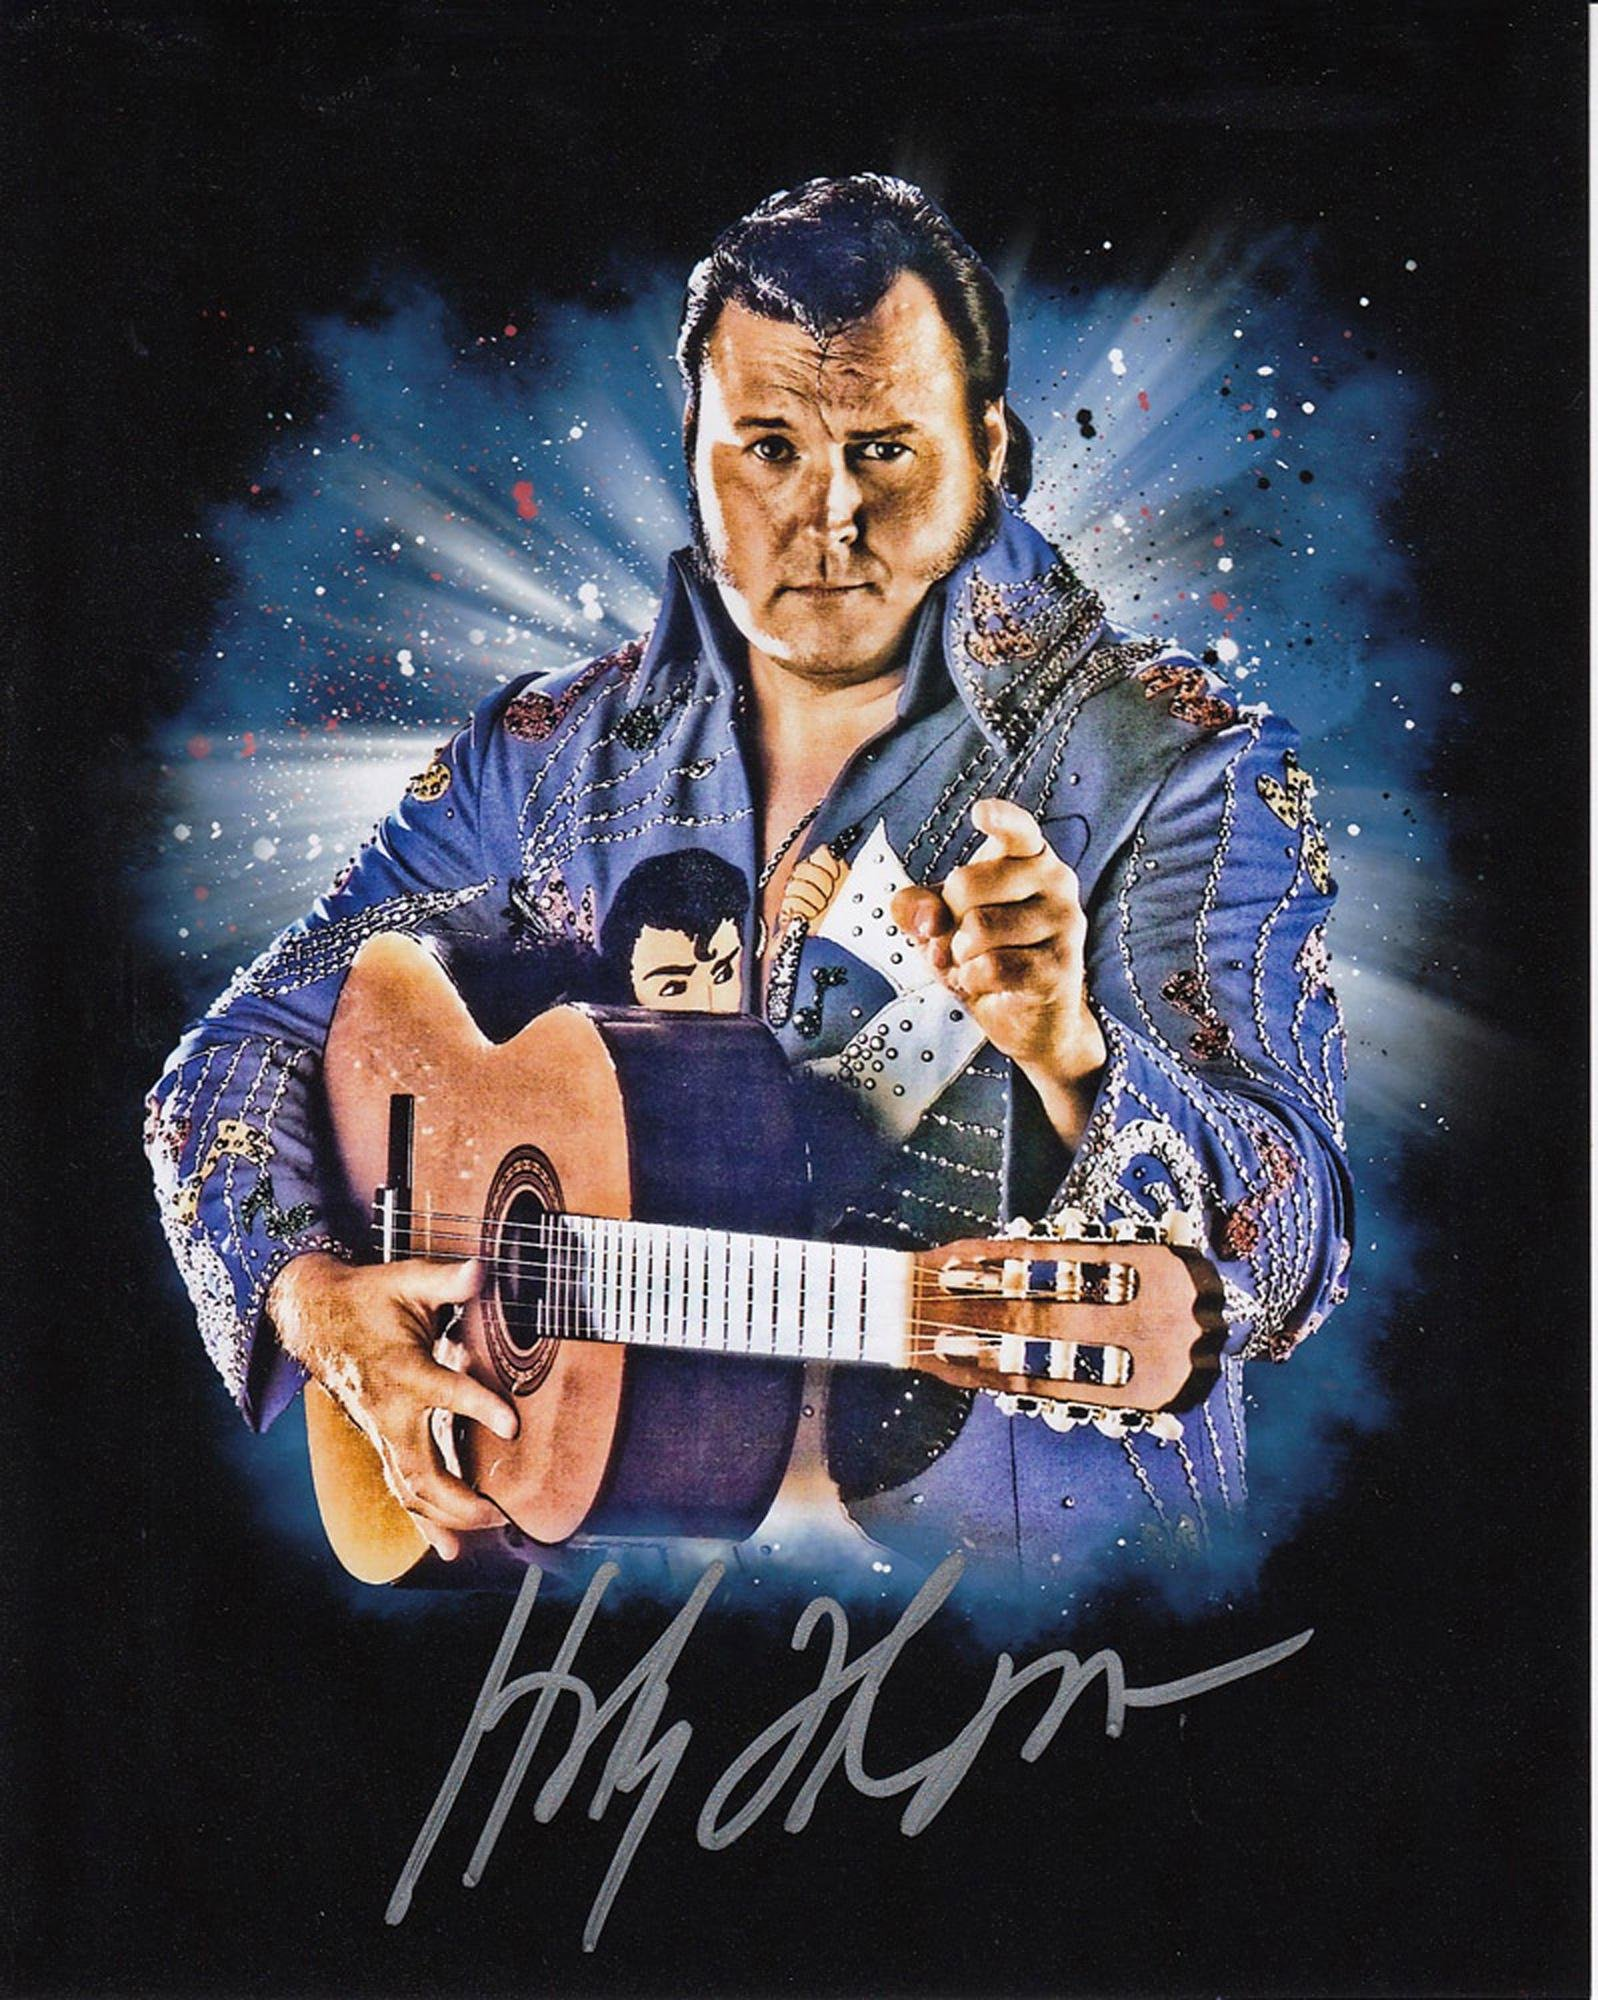 Blowout Sale! WWE WWF The Honky Tonk Man hand signed